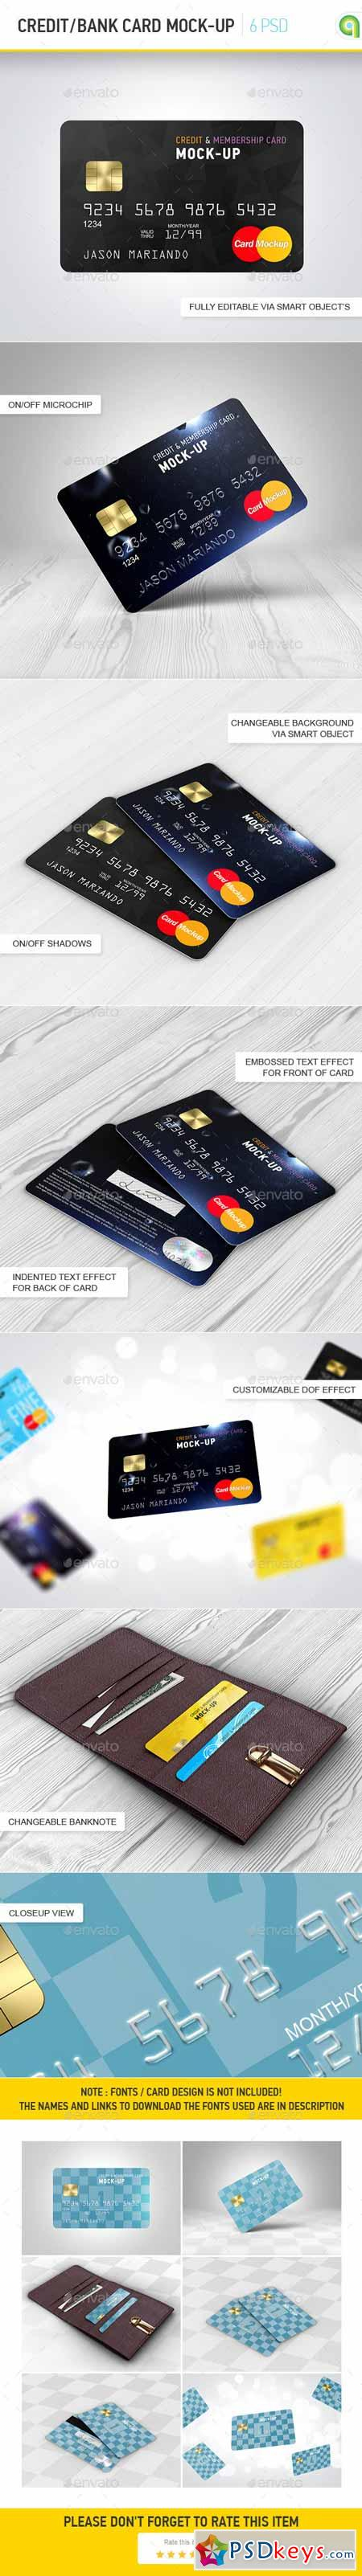 credit bank card mock up 9803458 free download photoshop vector stock image via torrent. Black Bedroom Furniture Sets. Home Design Ideas